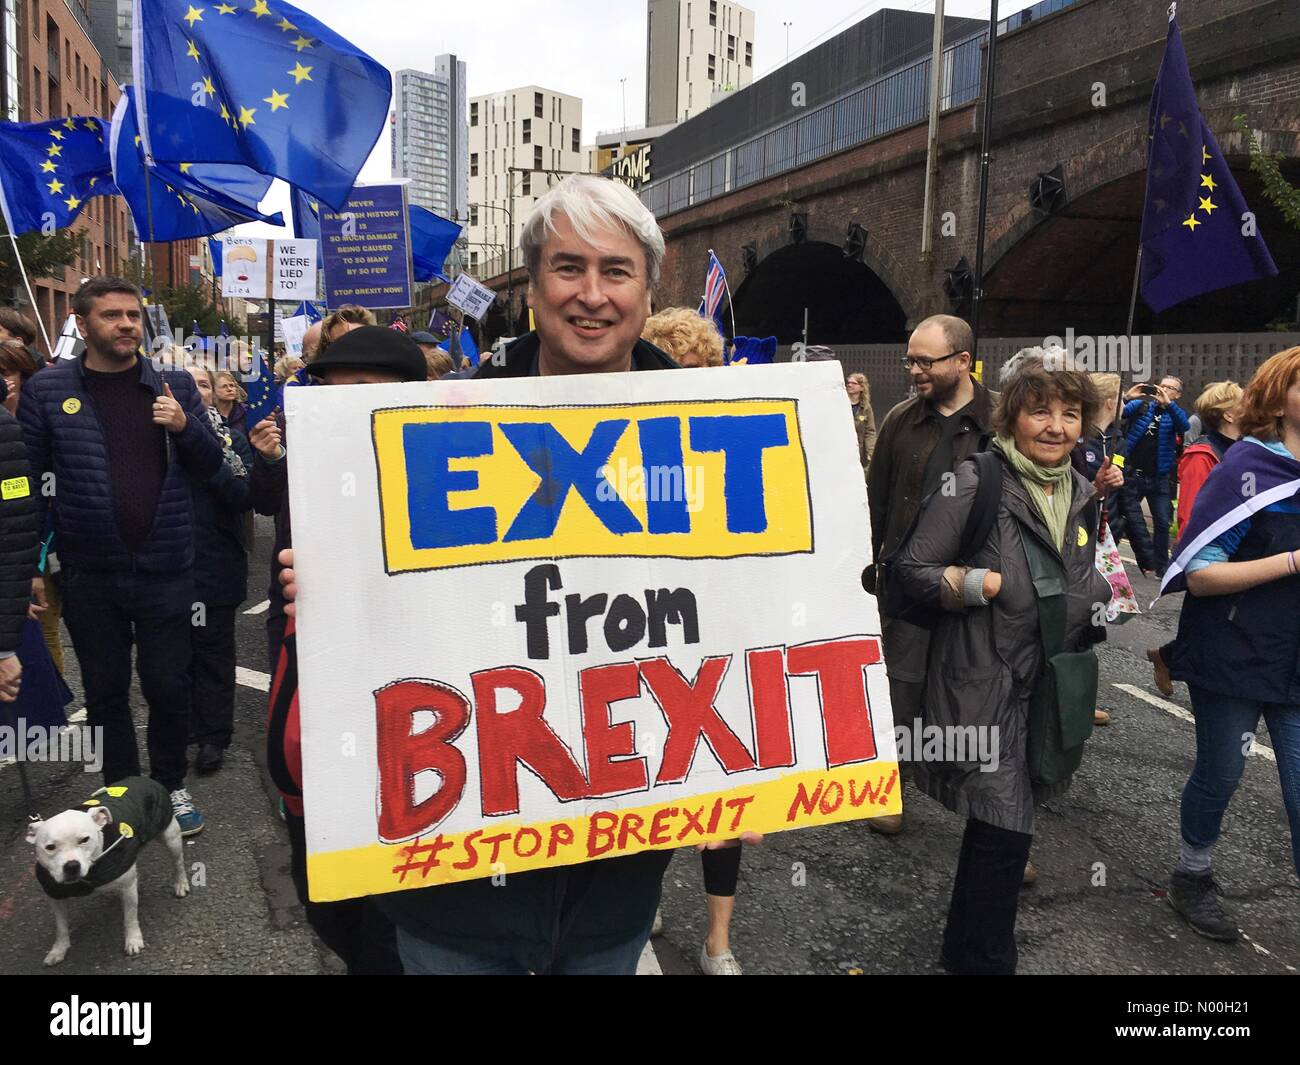 Stop Brexit march  - Manchester 1st October 2017- Anti Brexit demonstrators gather near the Conservative Party Conference Stock Photo